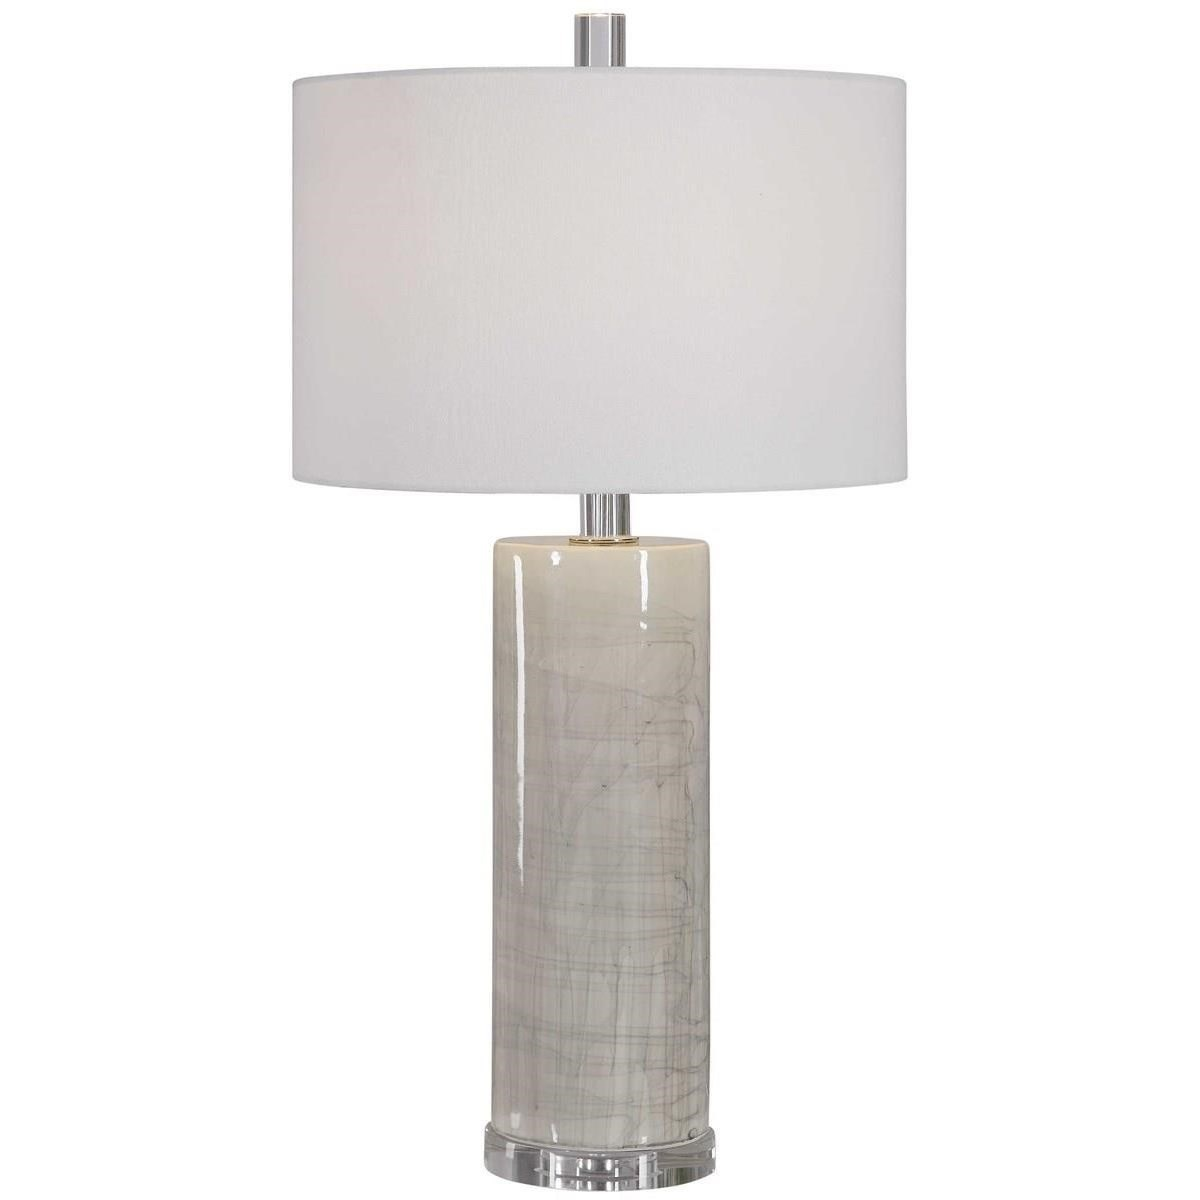 Zesiro Modern Table Lamp